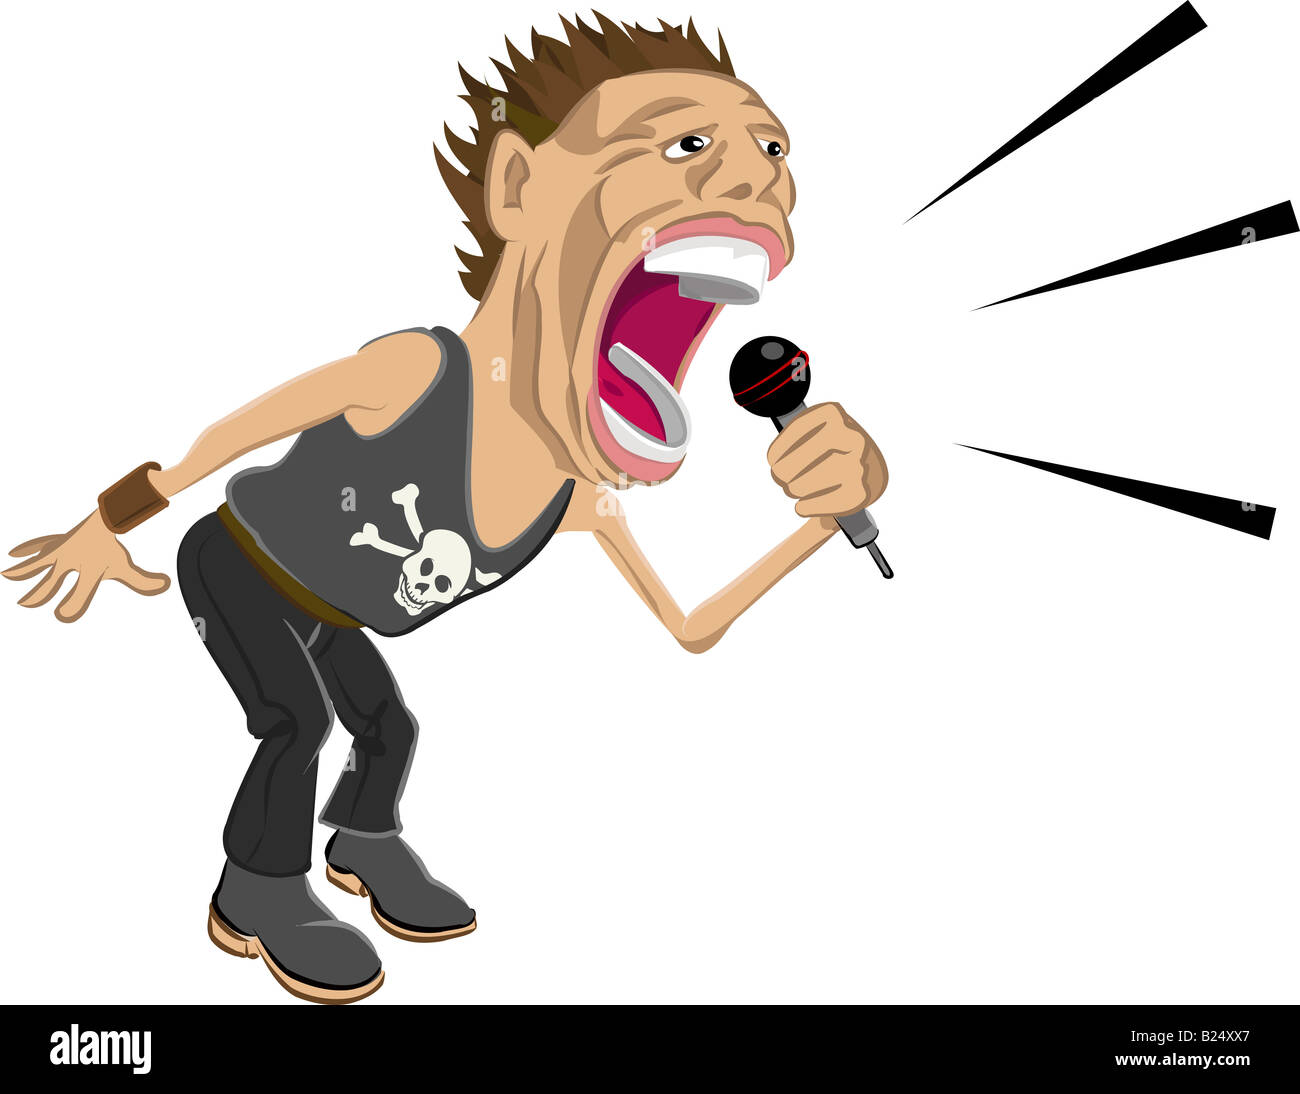 a rockstar screaming into a mic. - Stock Image